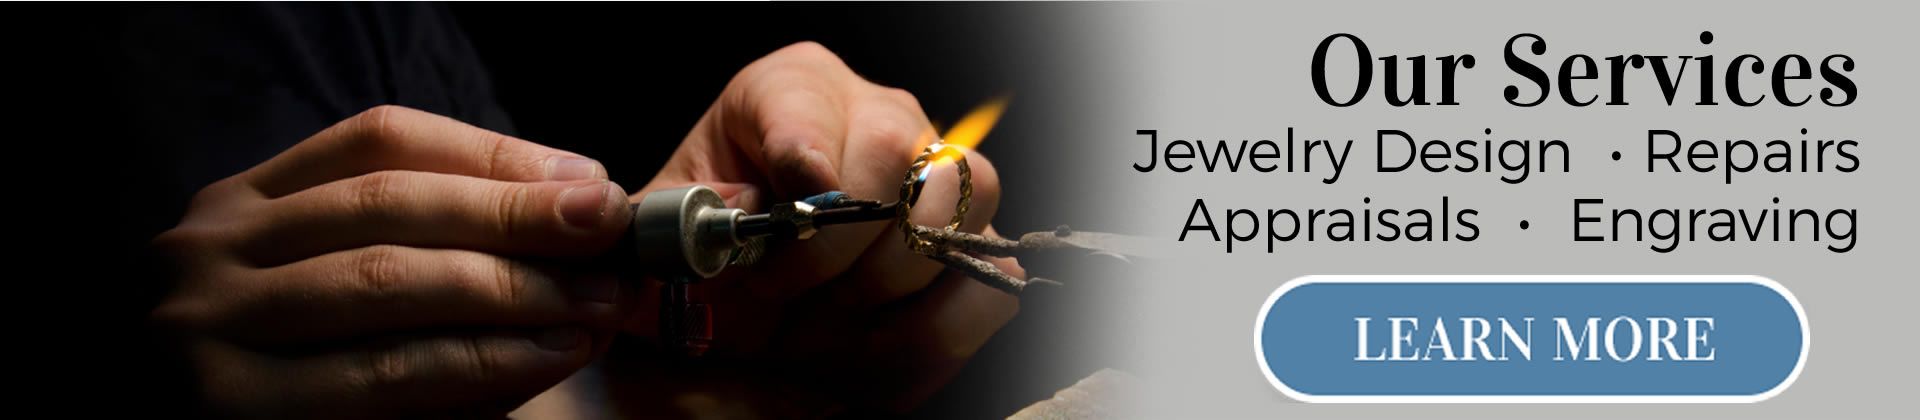 MJ Harrington Jewelers Our Services mobile